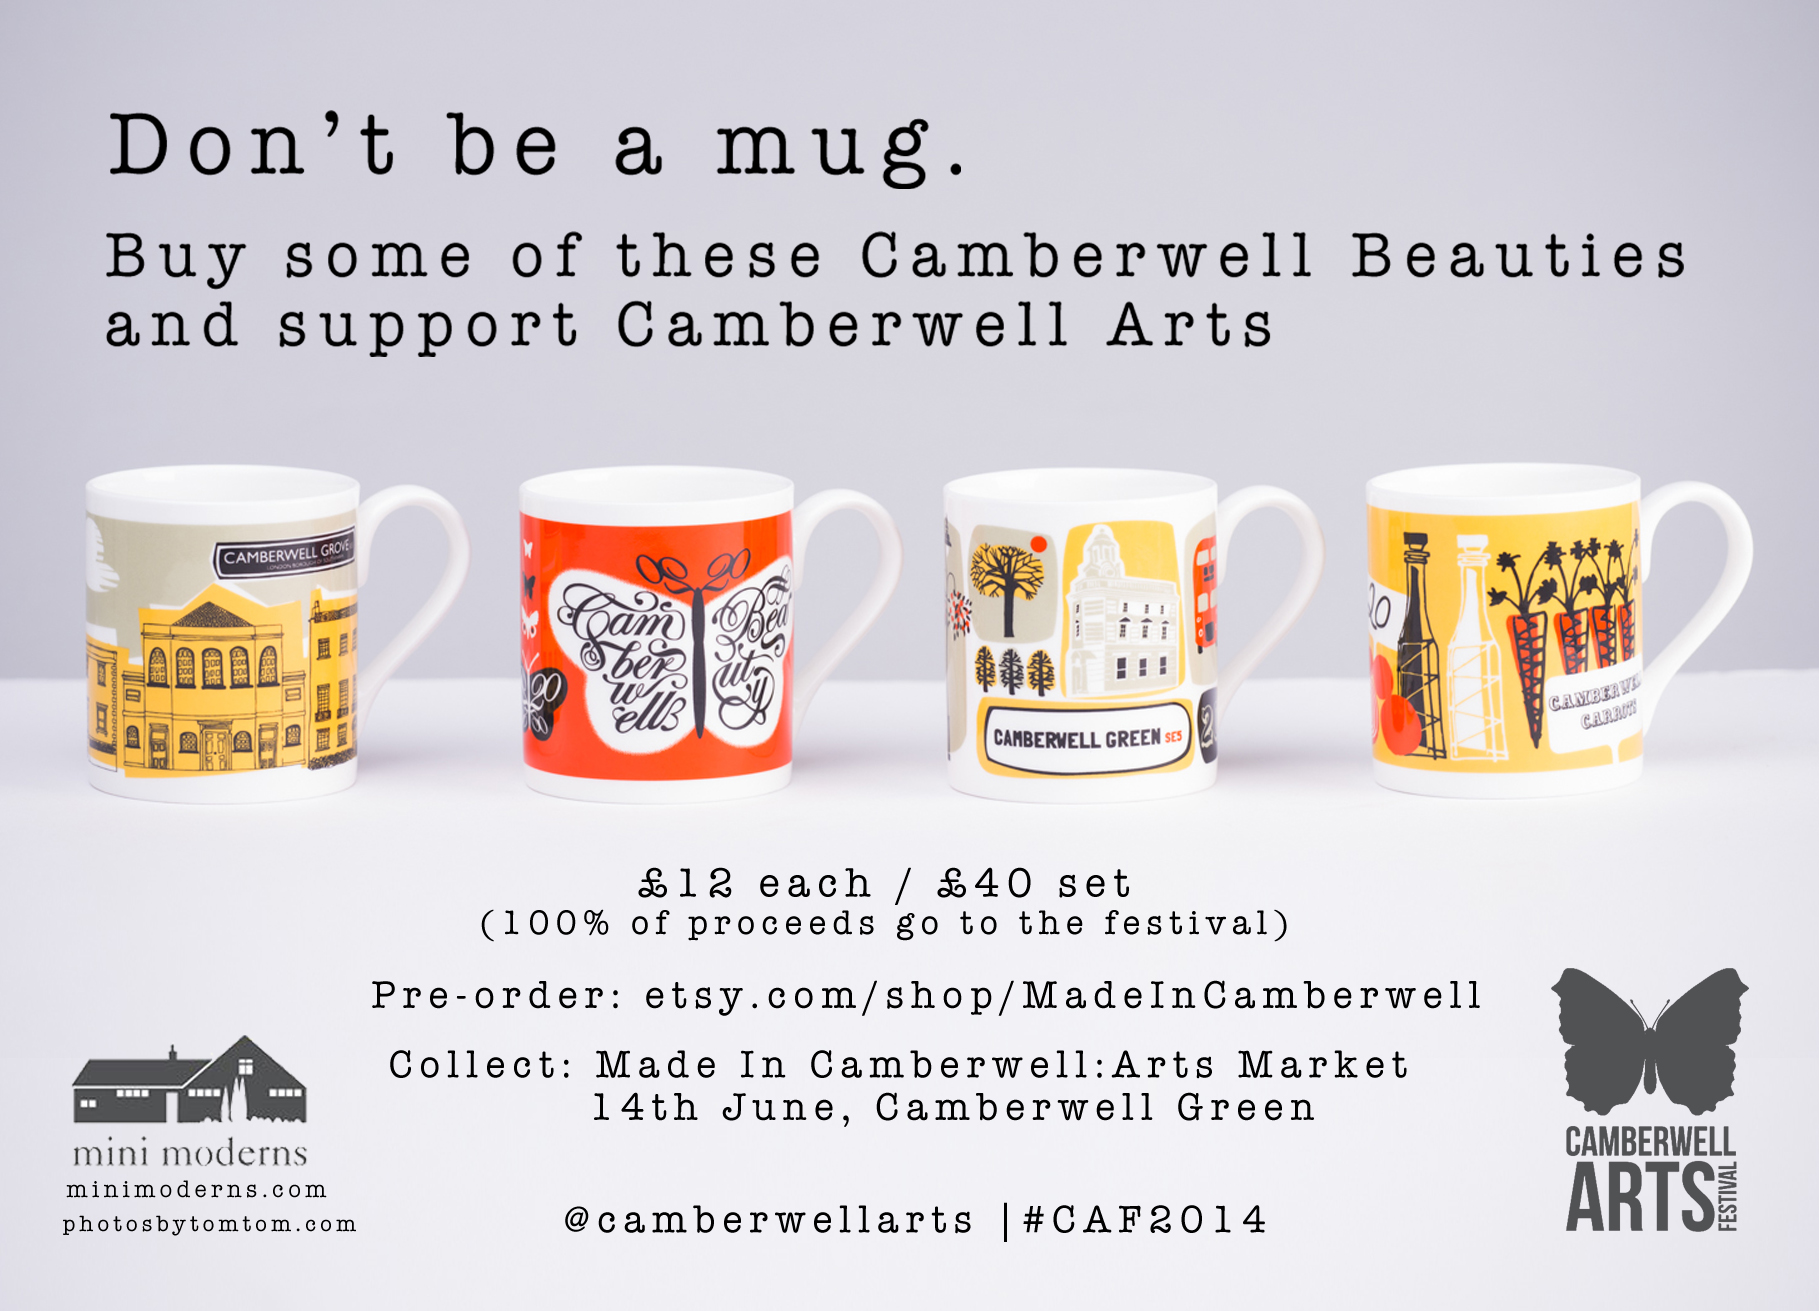 CAF 2014_DONT BE A MUG FLYER.jpg